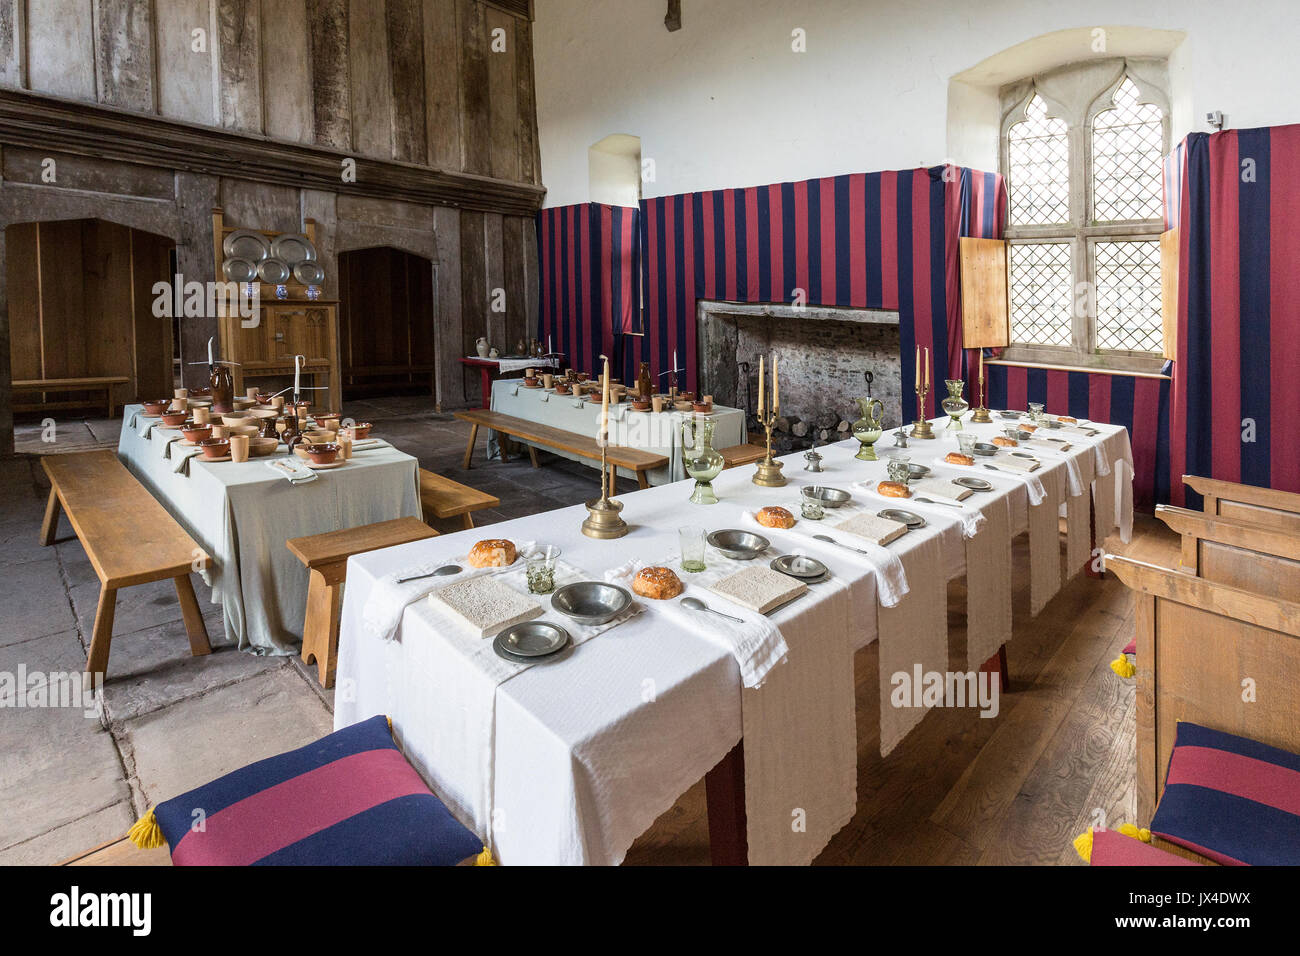 Medieval banquet settings at Tretower Court, Wales, UK - Stock Image